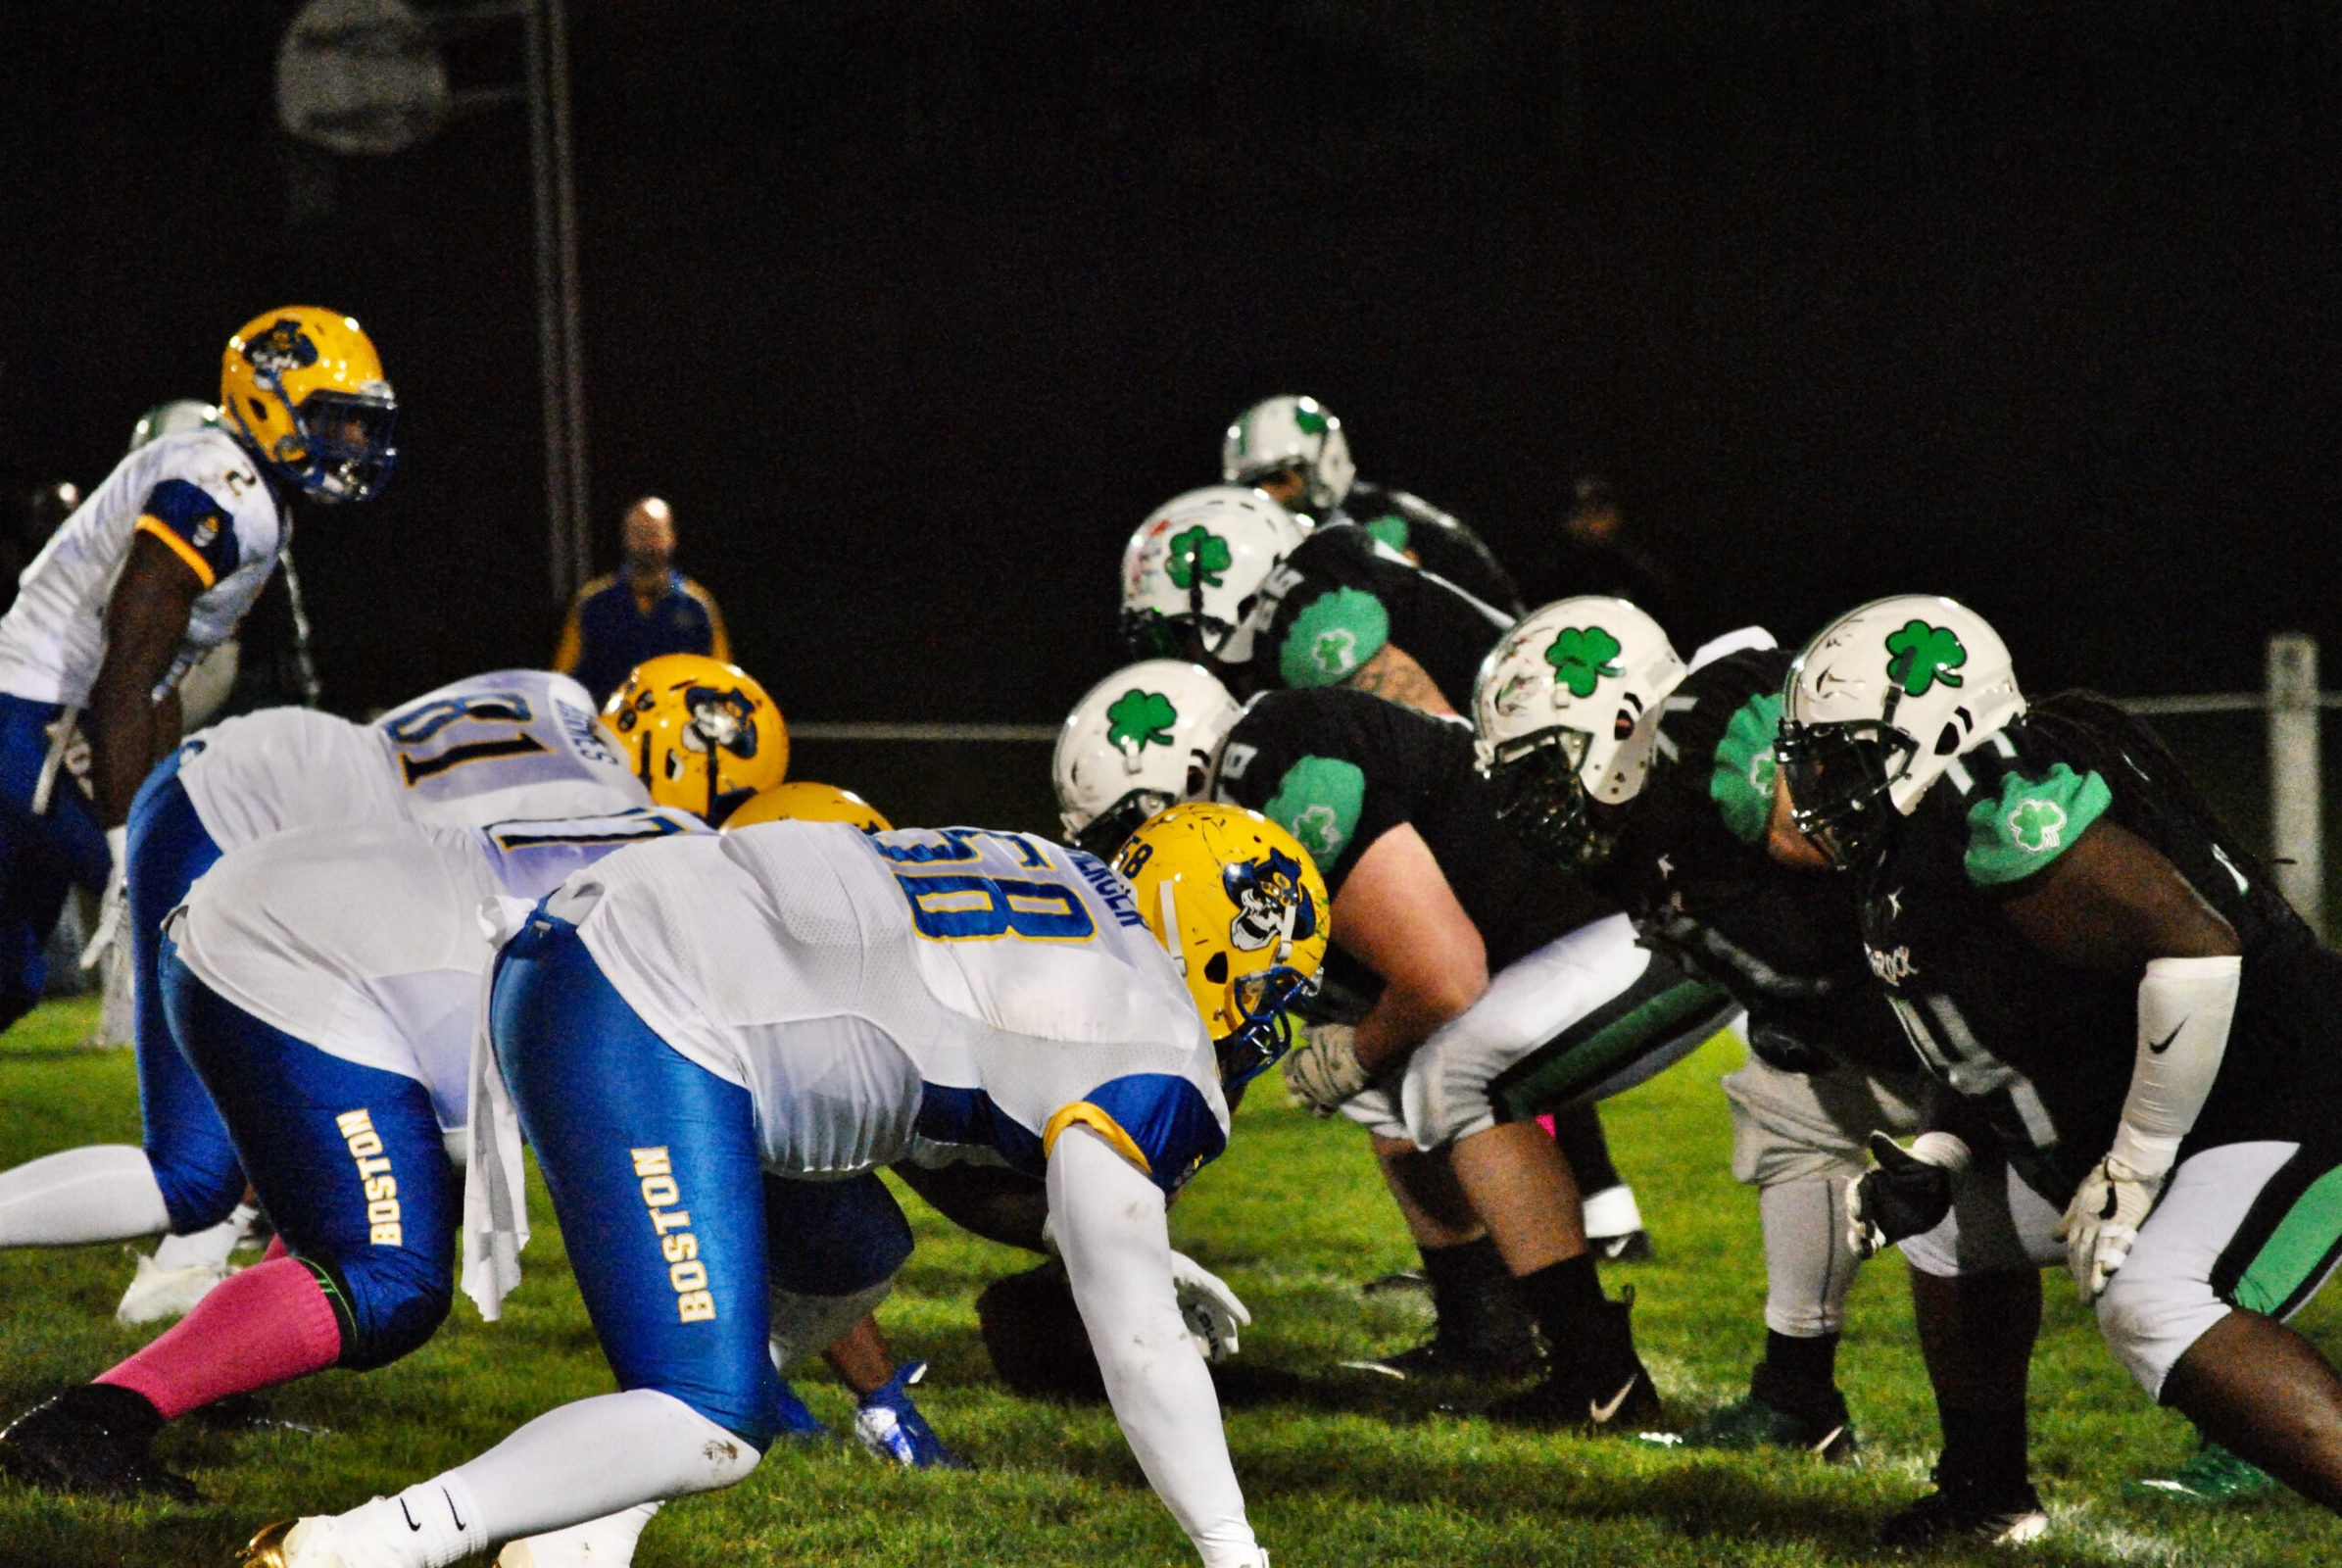 The Shamrocks faced off against the Boston Bandits on Oct. 9.